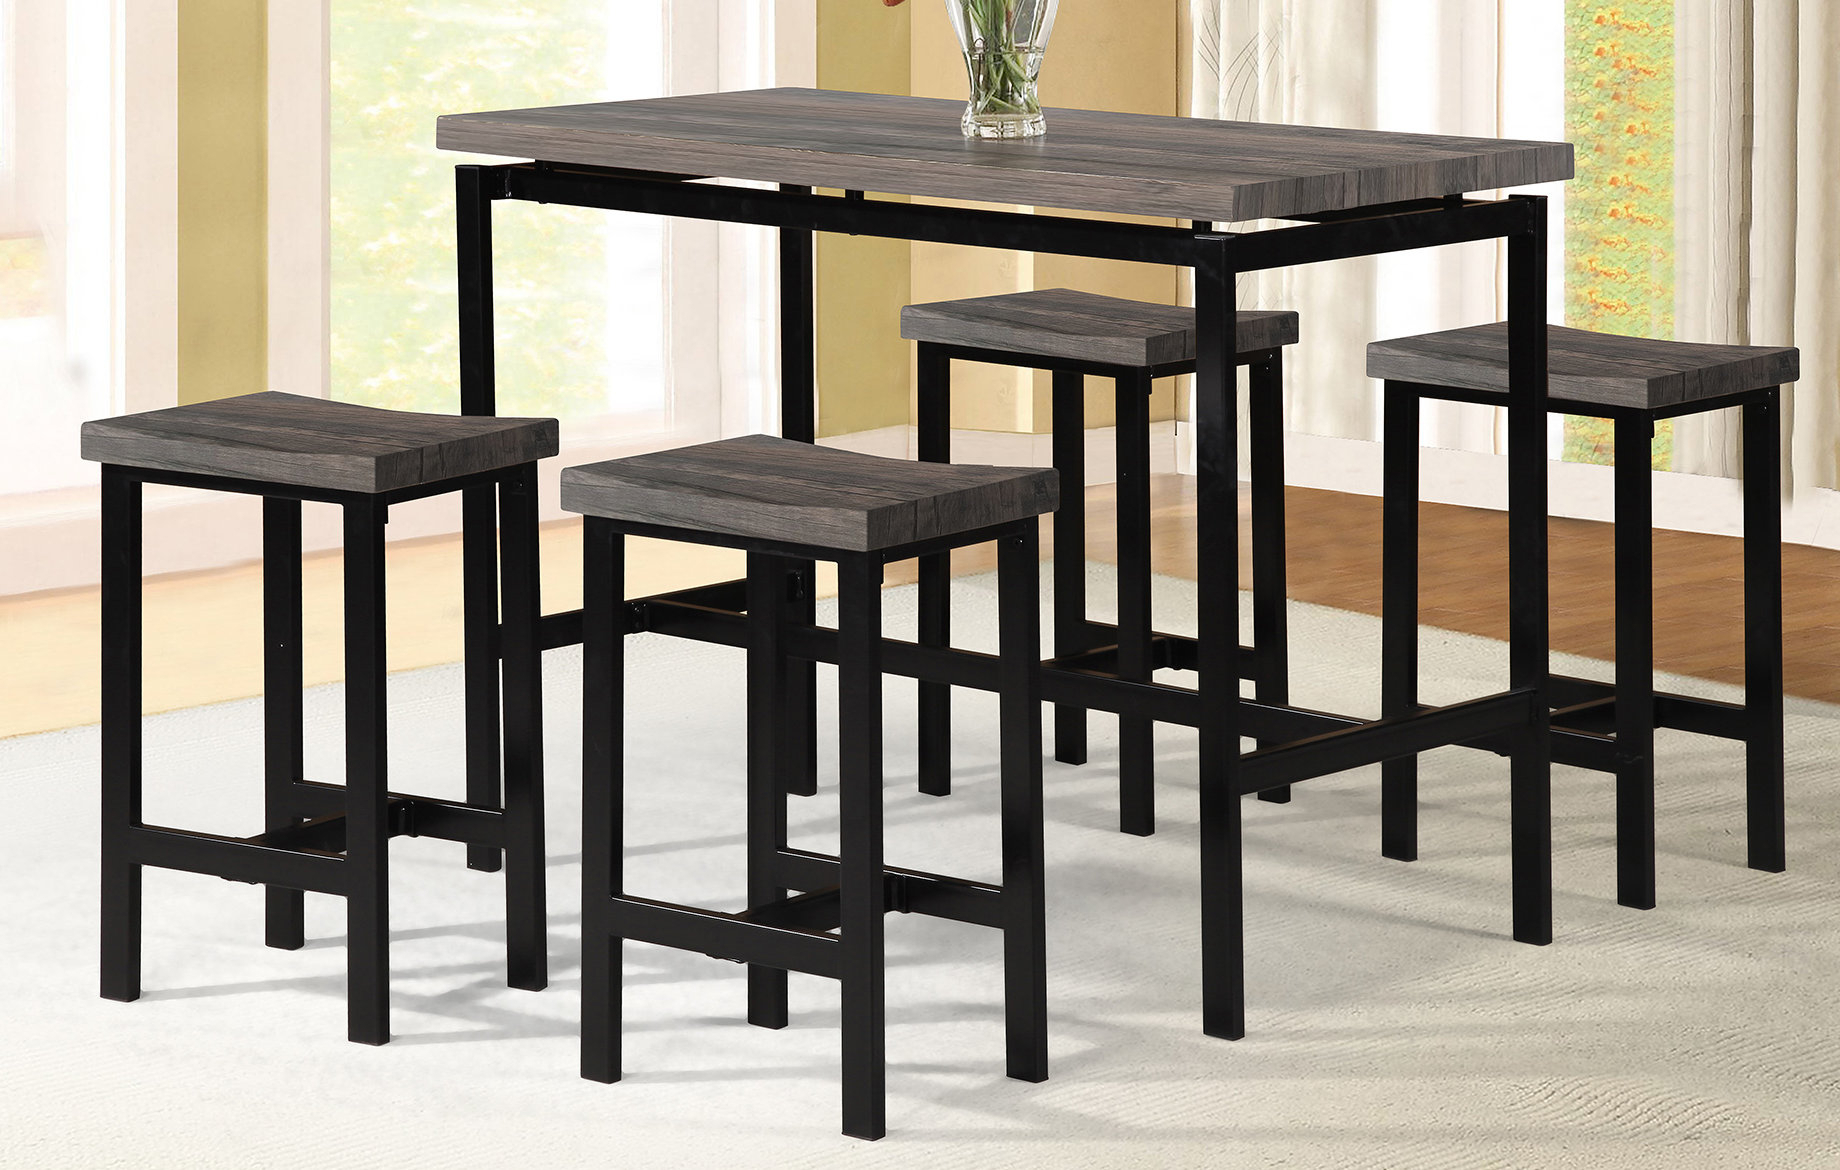 Details About Wrought Studio Denzel 5 Piece Counter Height Breakfast Nook  Dining Set With Regard To Most Current Denzel 5 Piece Counter Height Breakfast Nook Dining Sets (Photo 3 of 20)